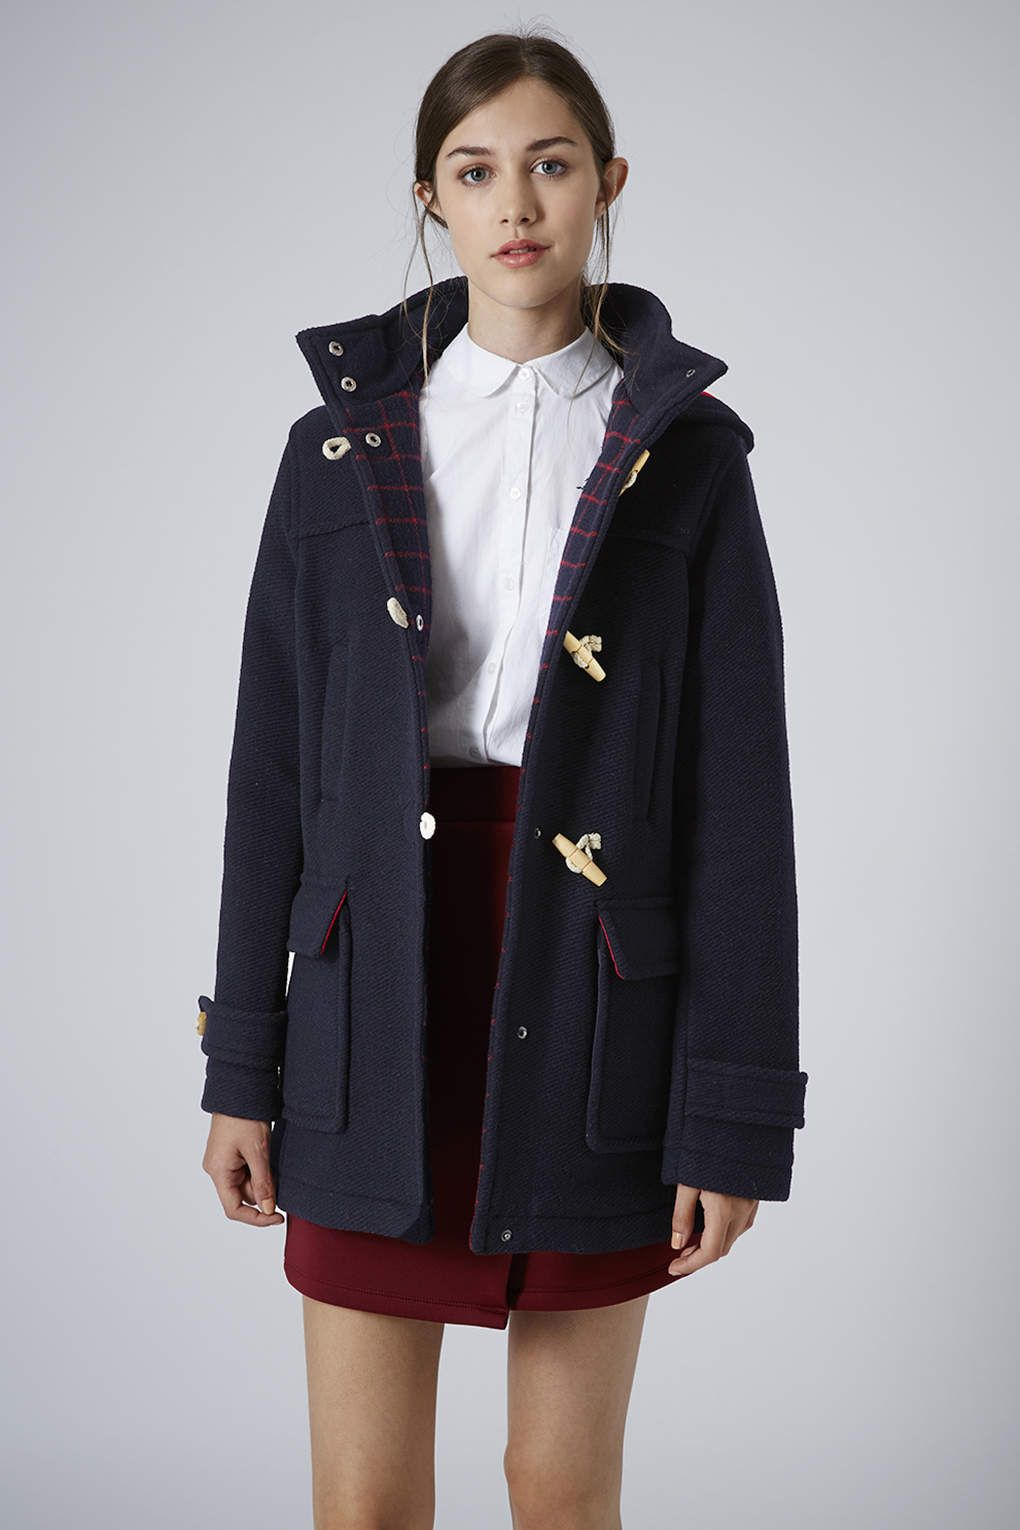 Bound Seam Wool Blend Duffle Coat - Duffle Coats - Jackets & Coats ...